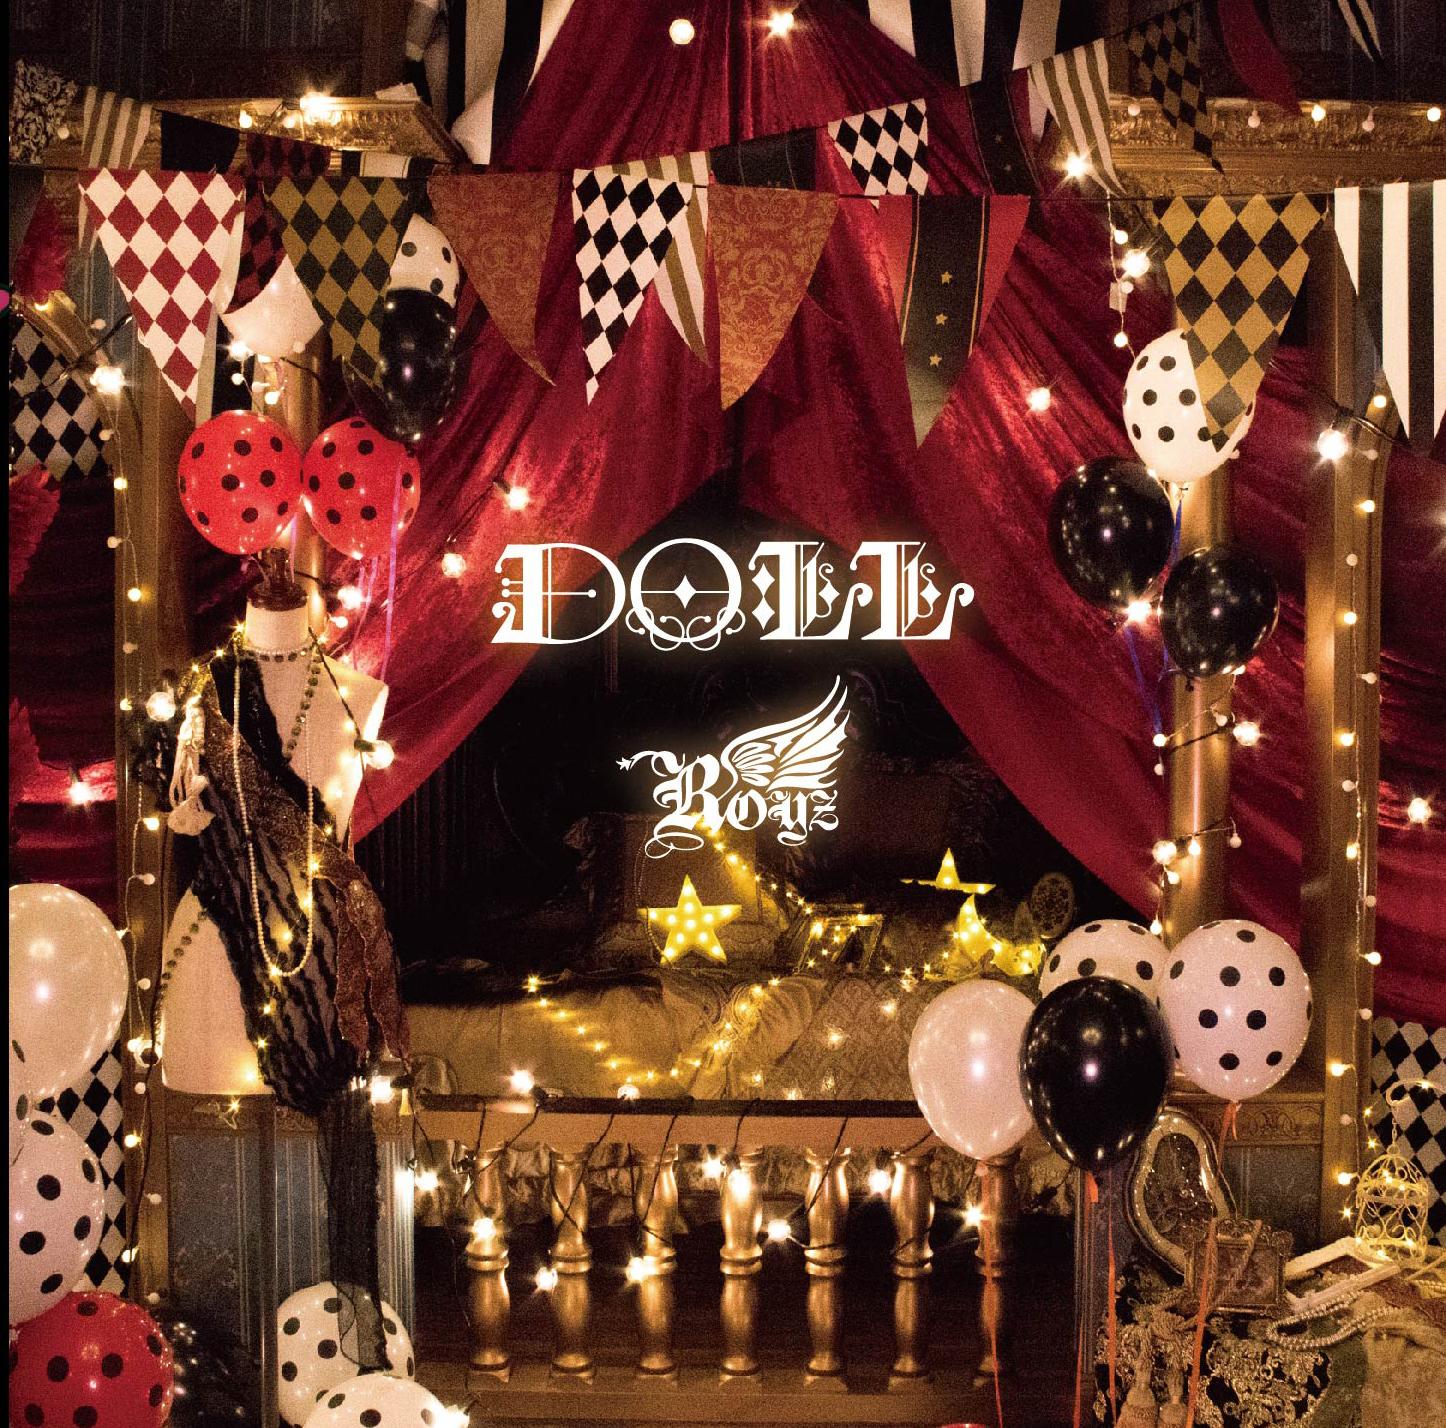 Royz 15th maxi single 「DOLL」Dtype